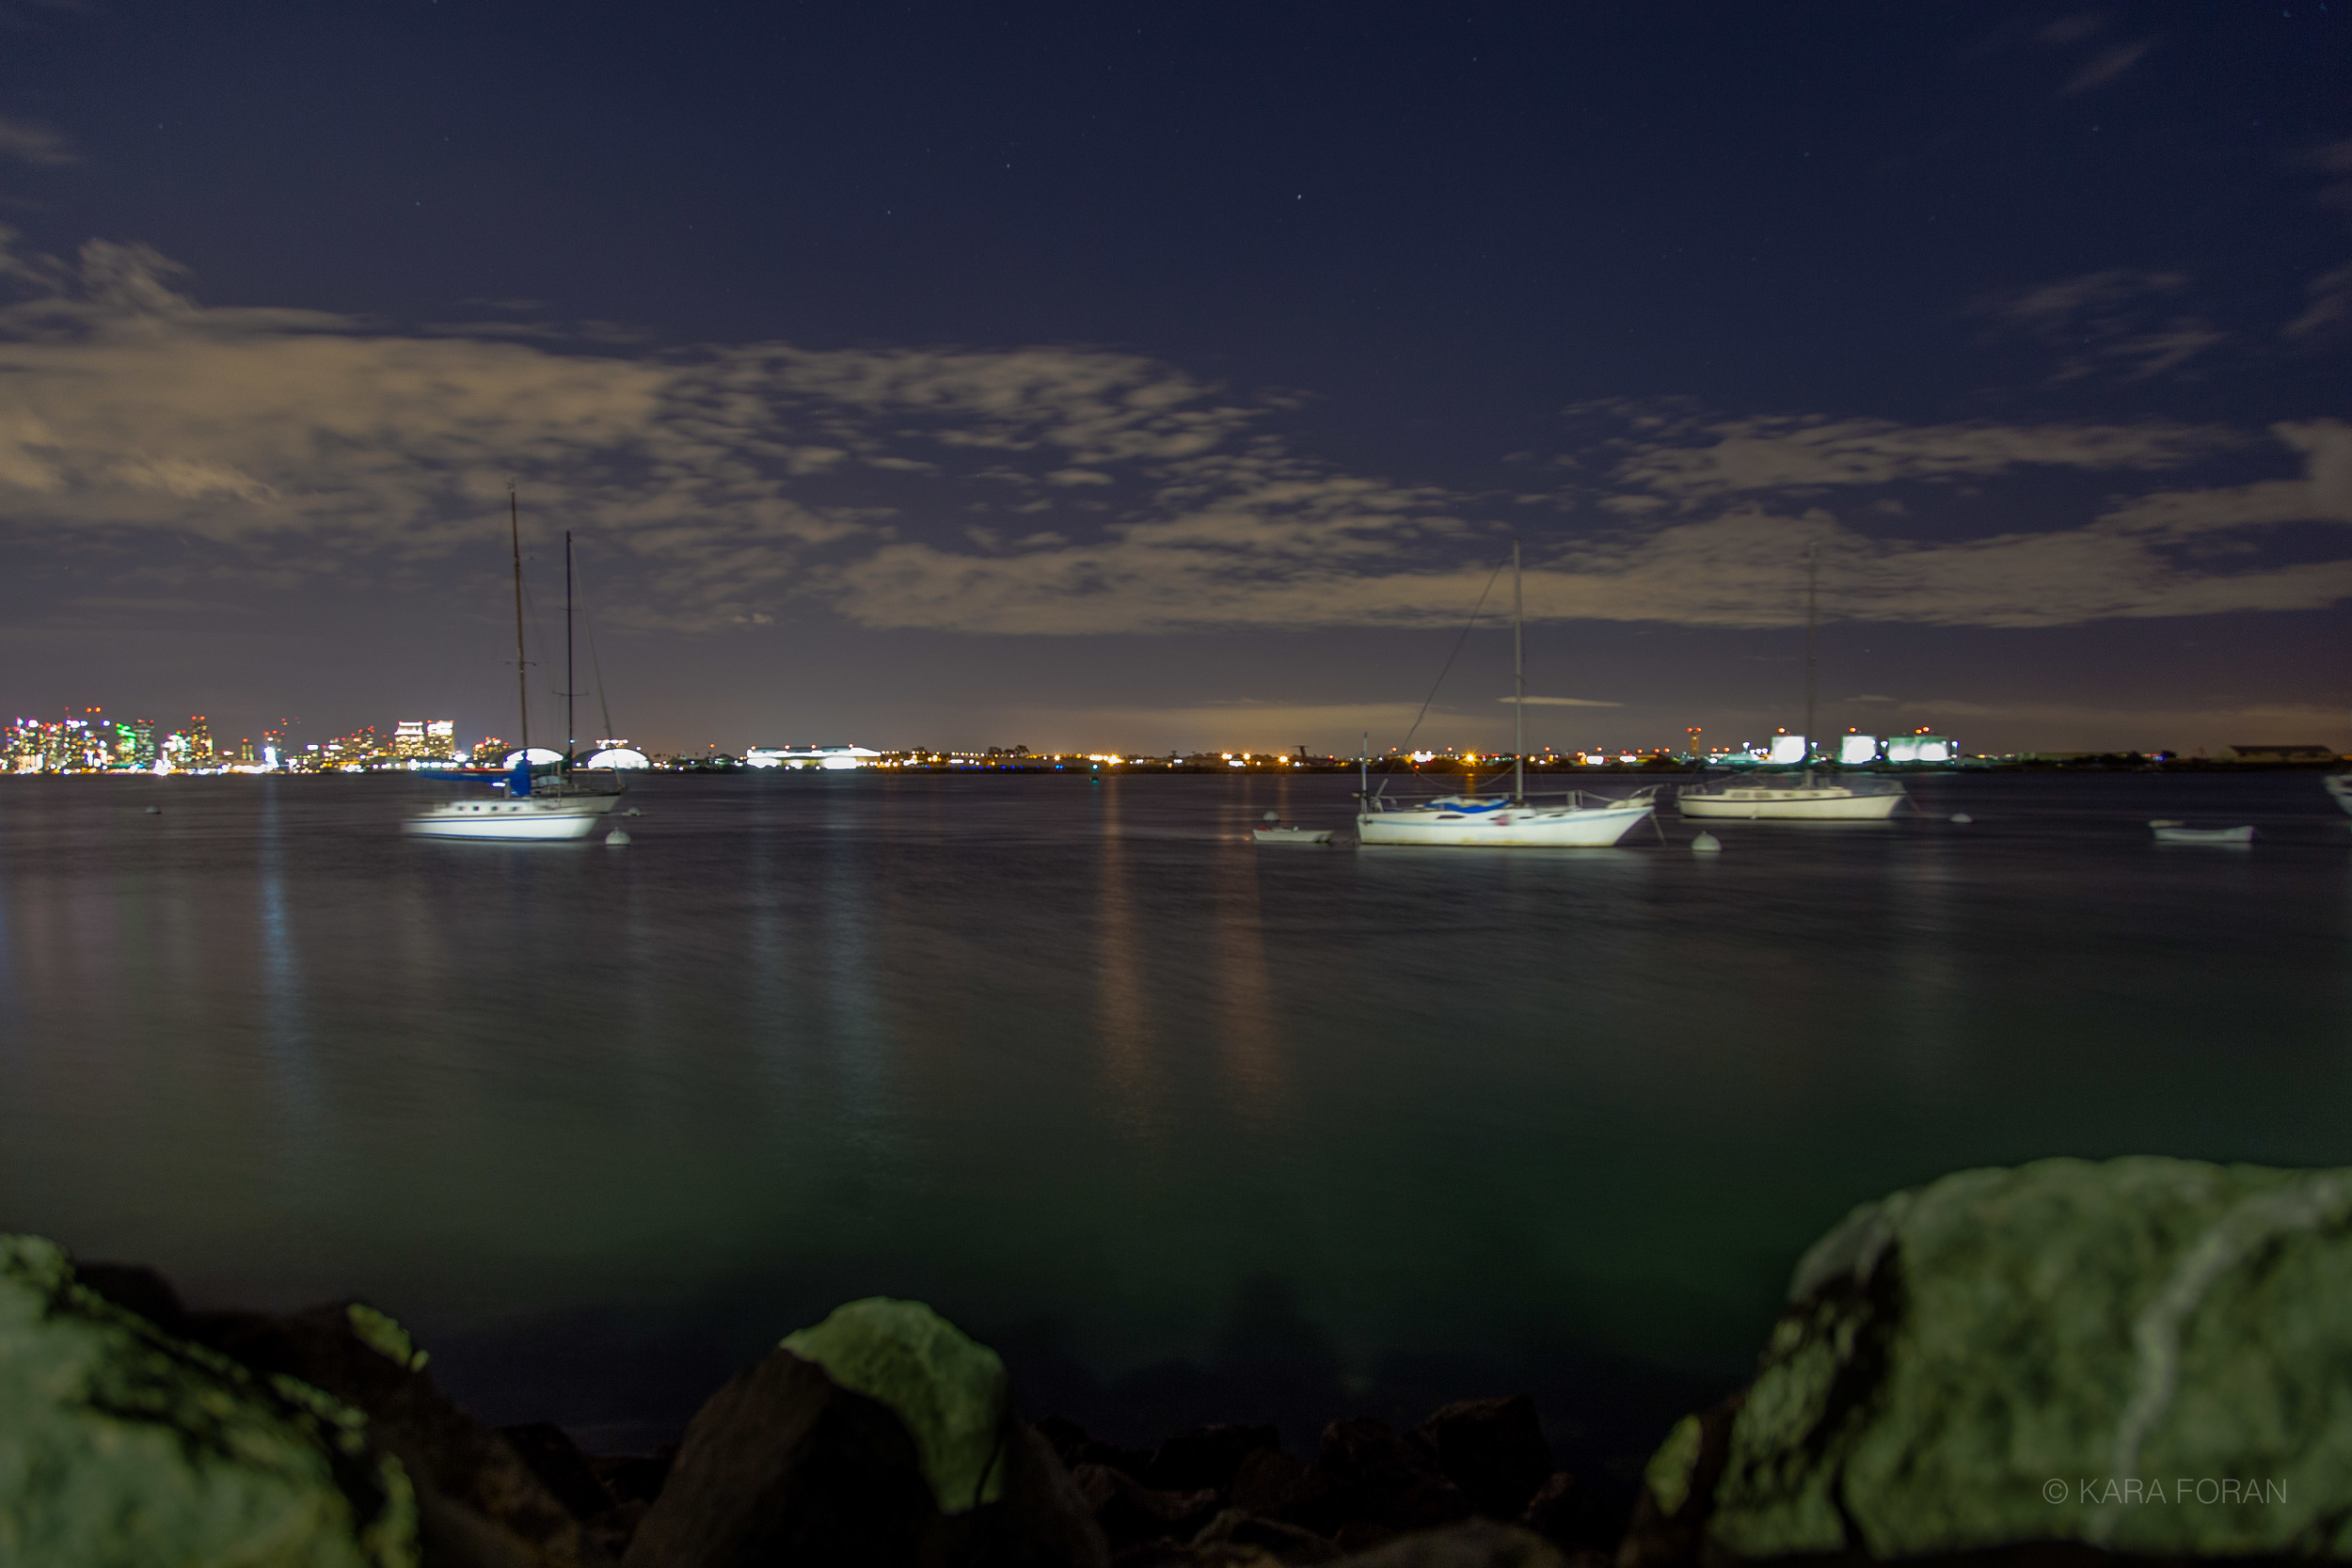 Boats in San Diego